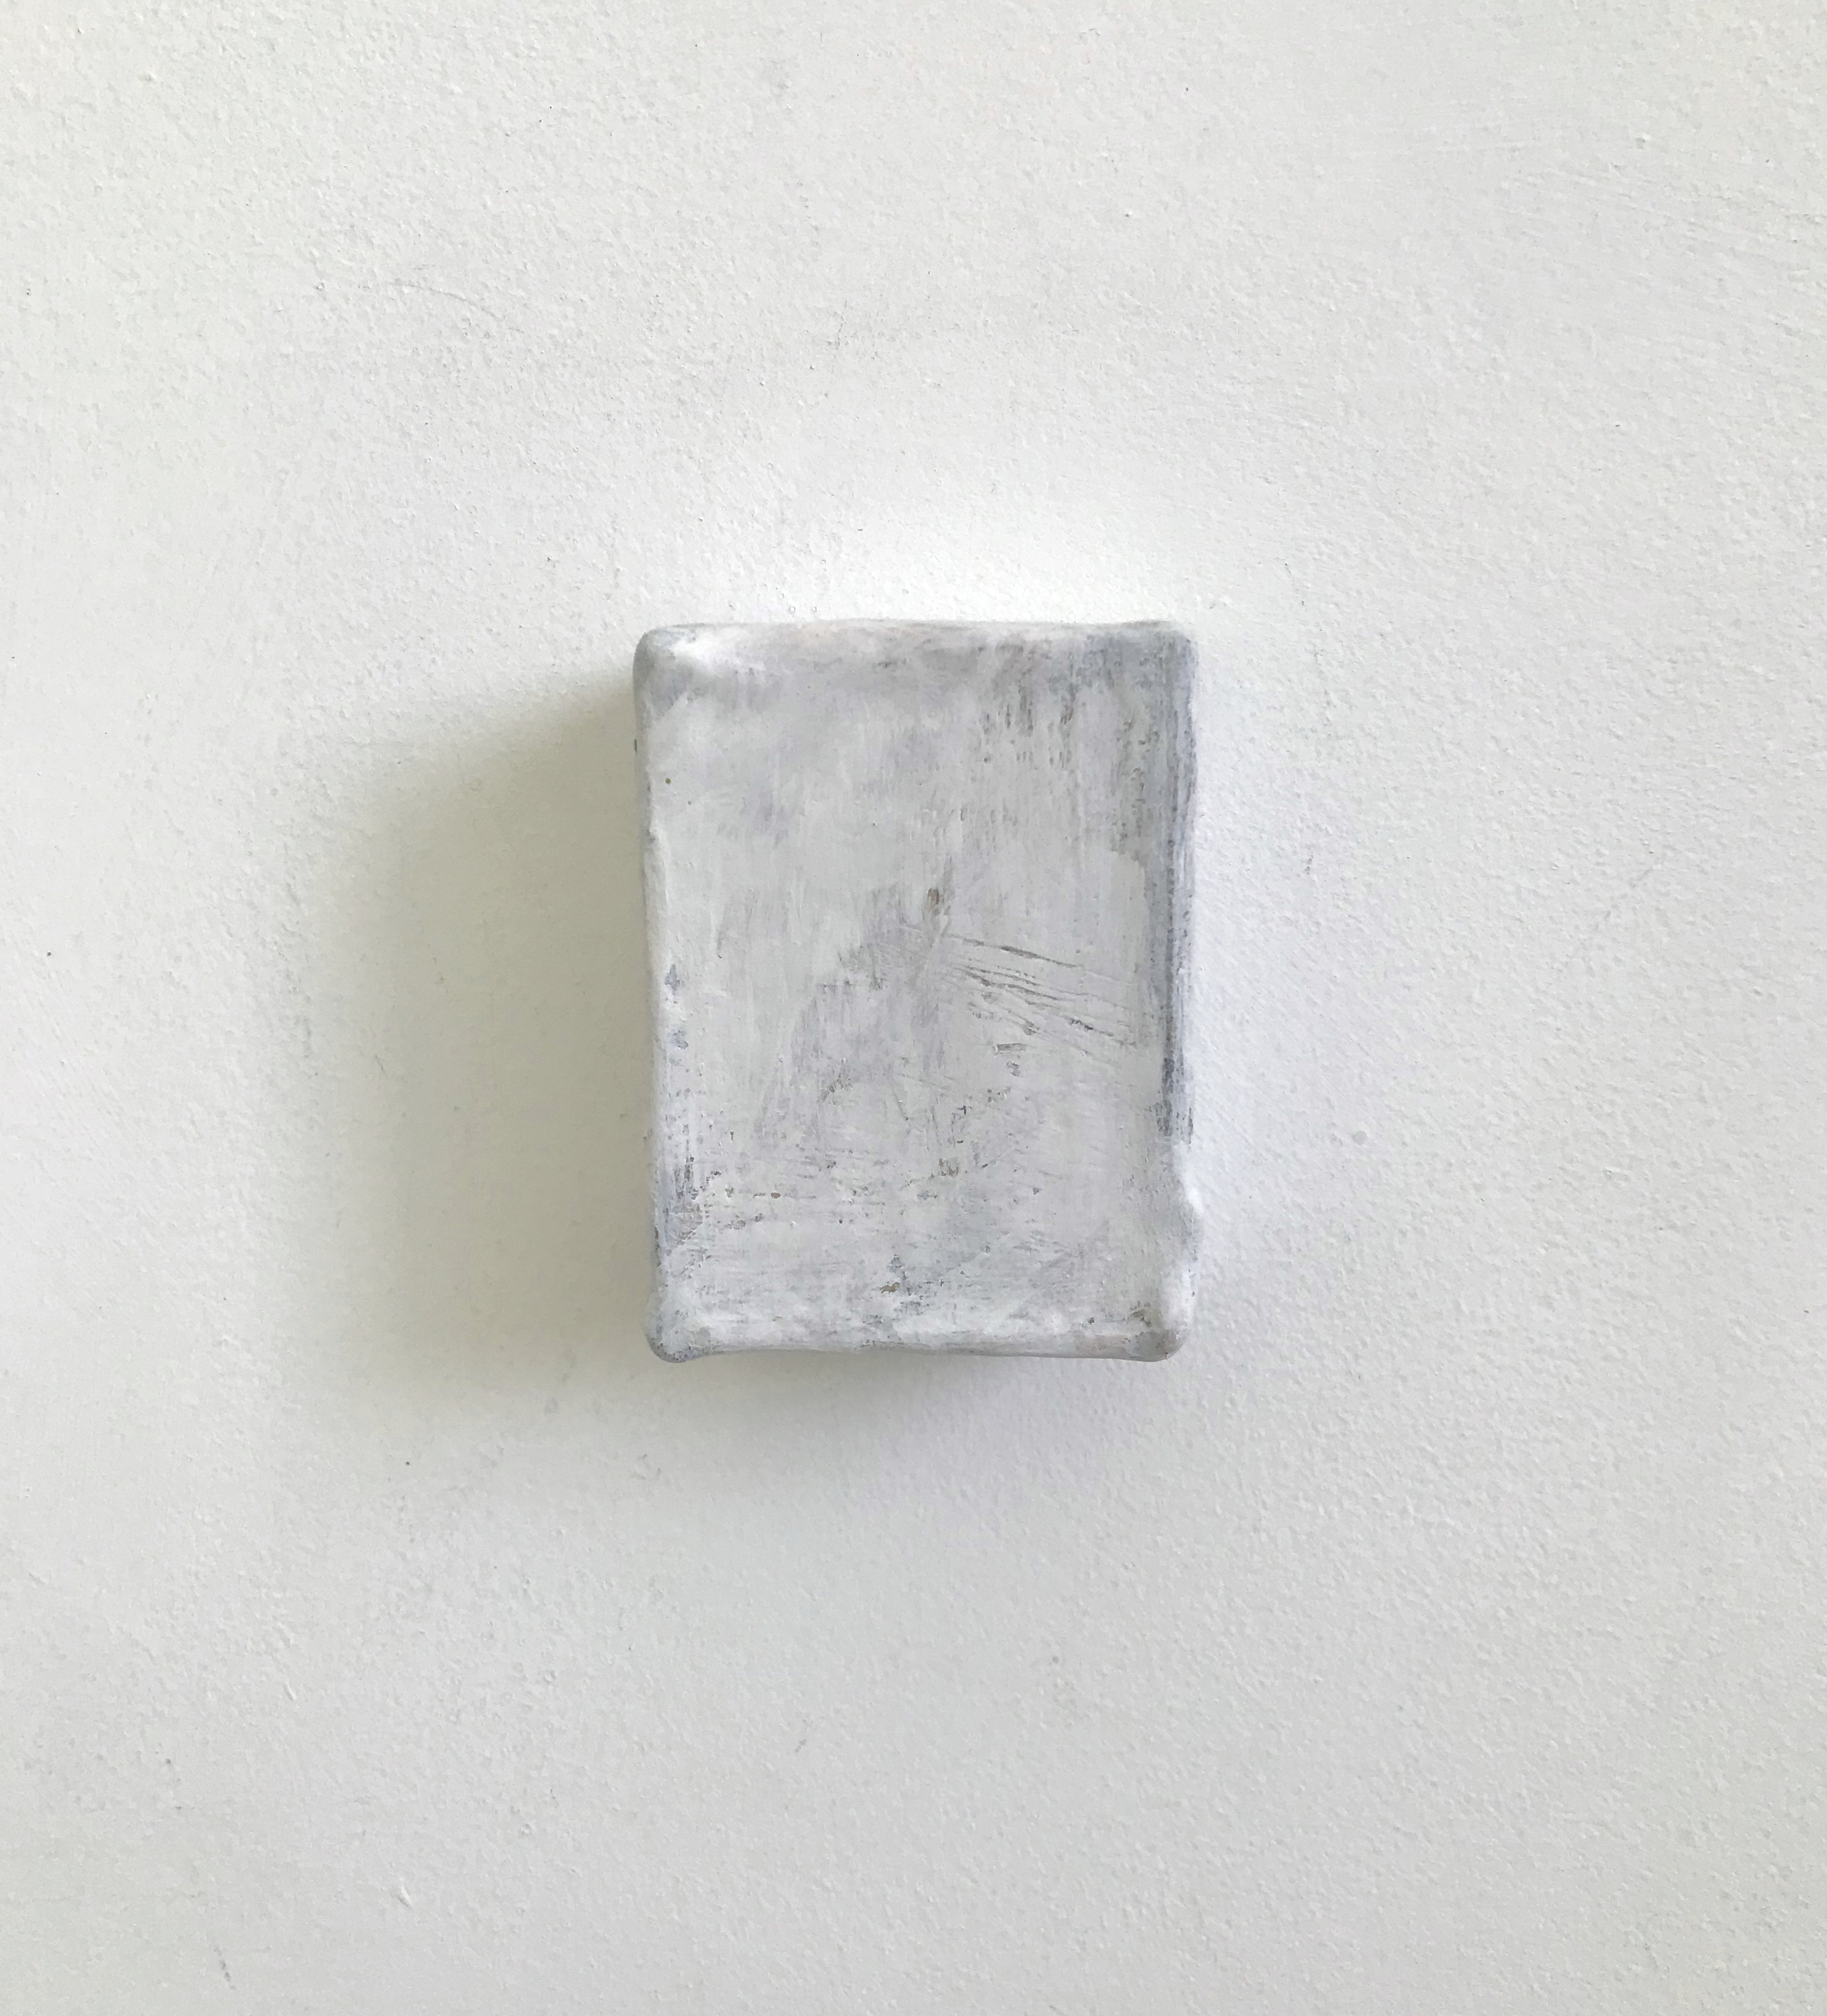 White Out | Charlie Franklin, 2018 | oil, chalk paint, metallic paint, gesso, cardboard | 8.5cm x 6.5cm x 4cm | image: courtesy of the artist